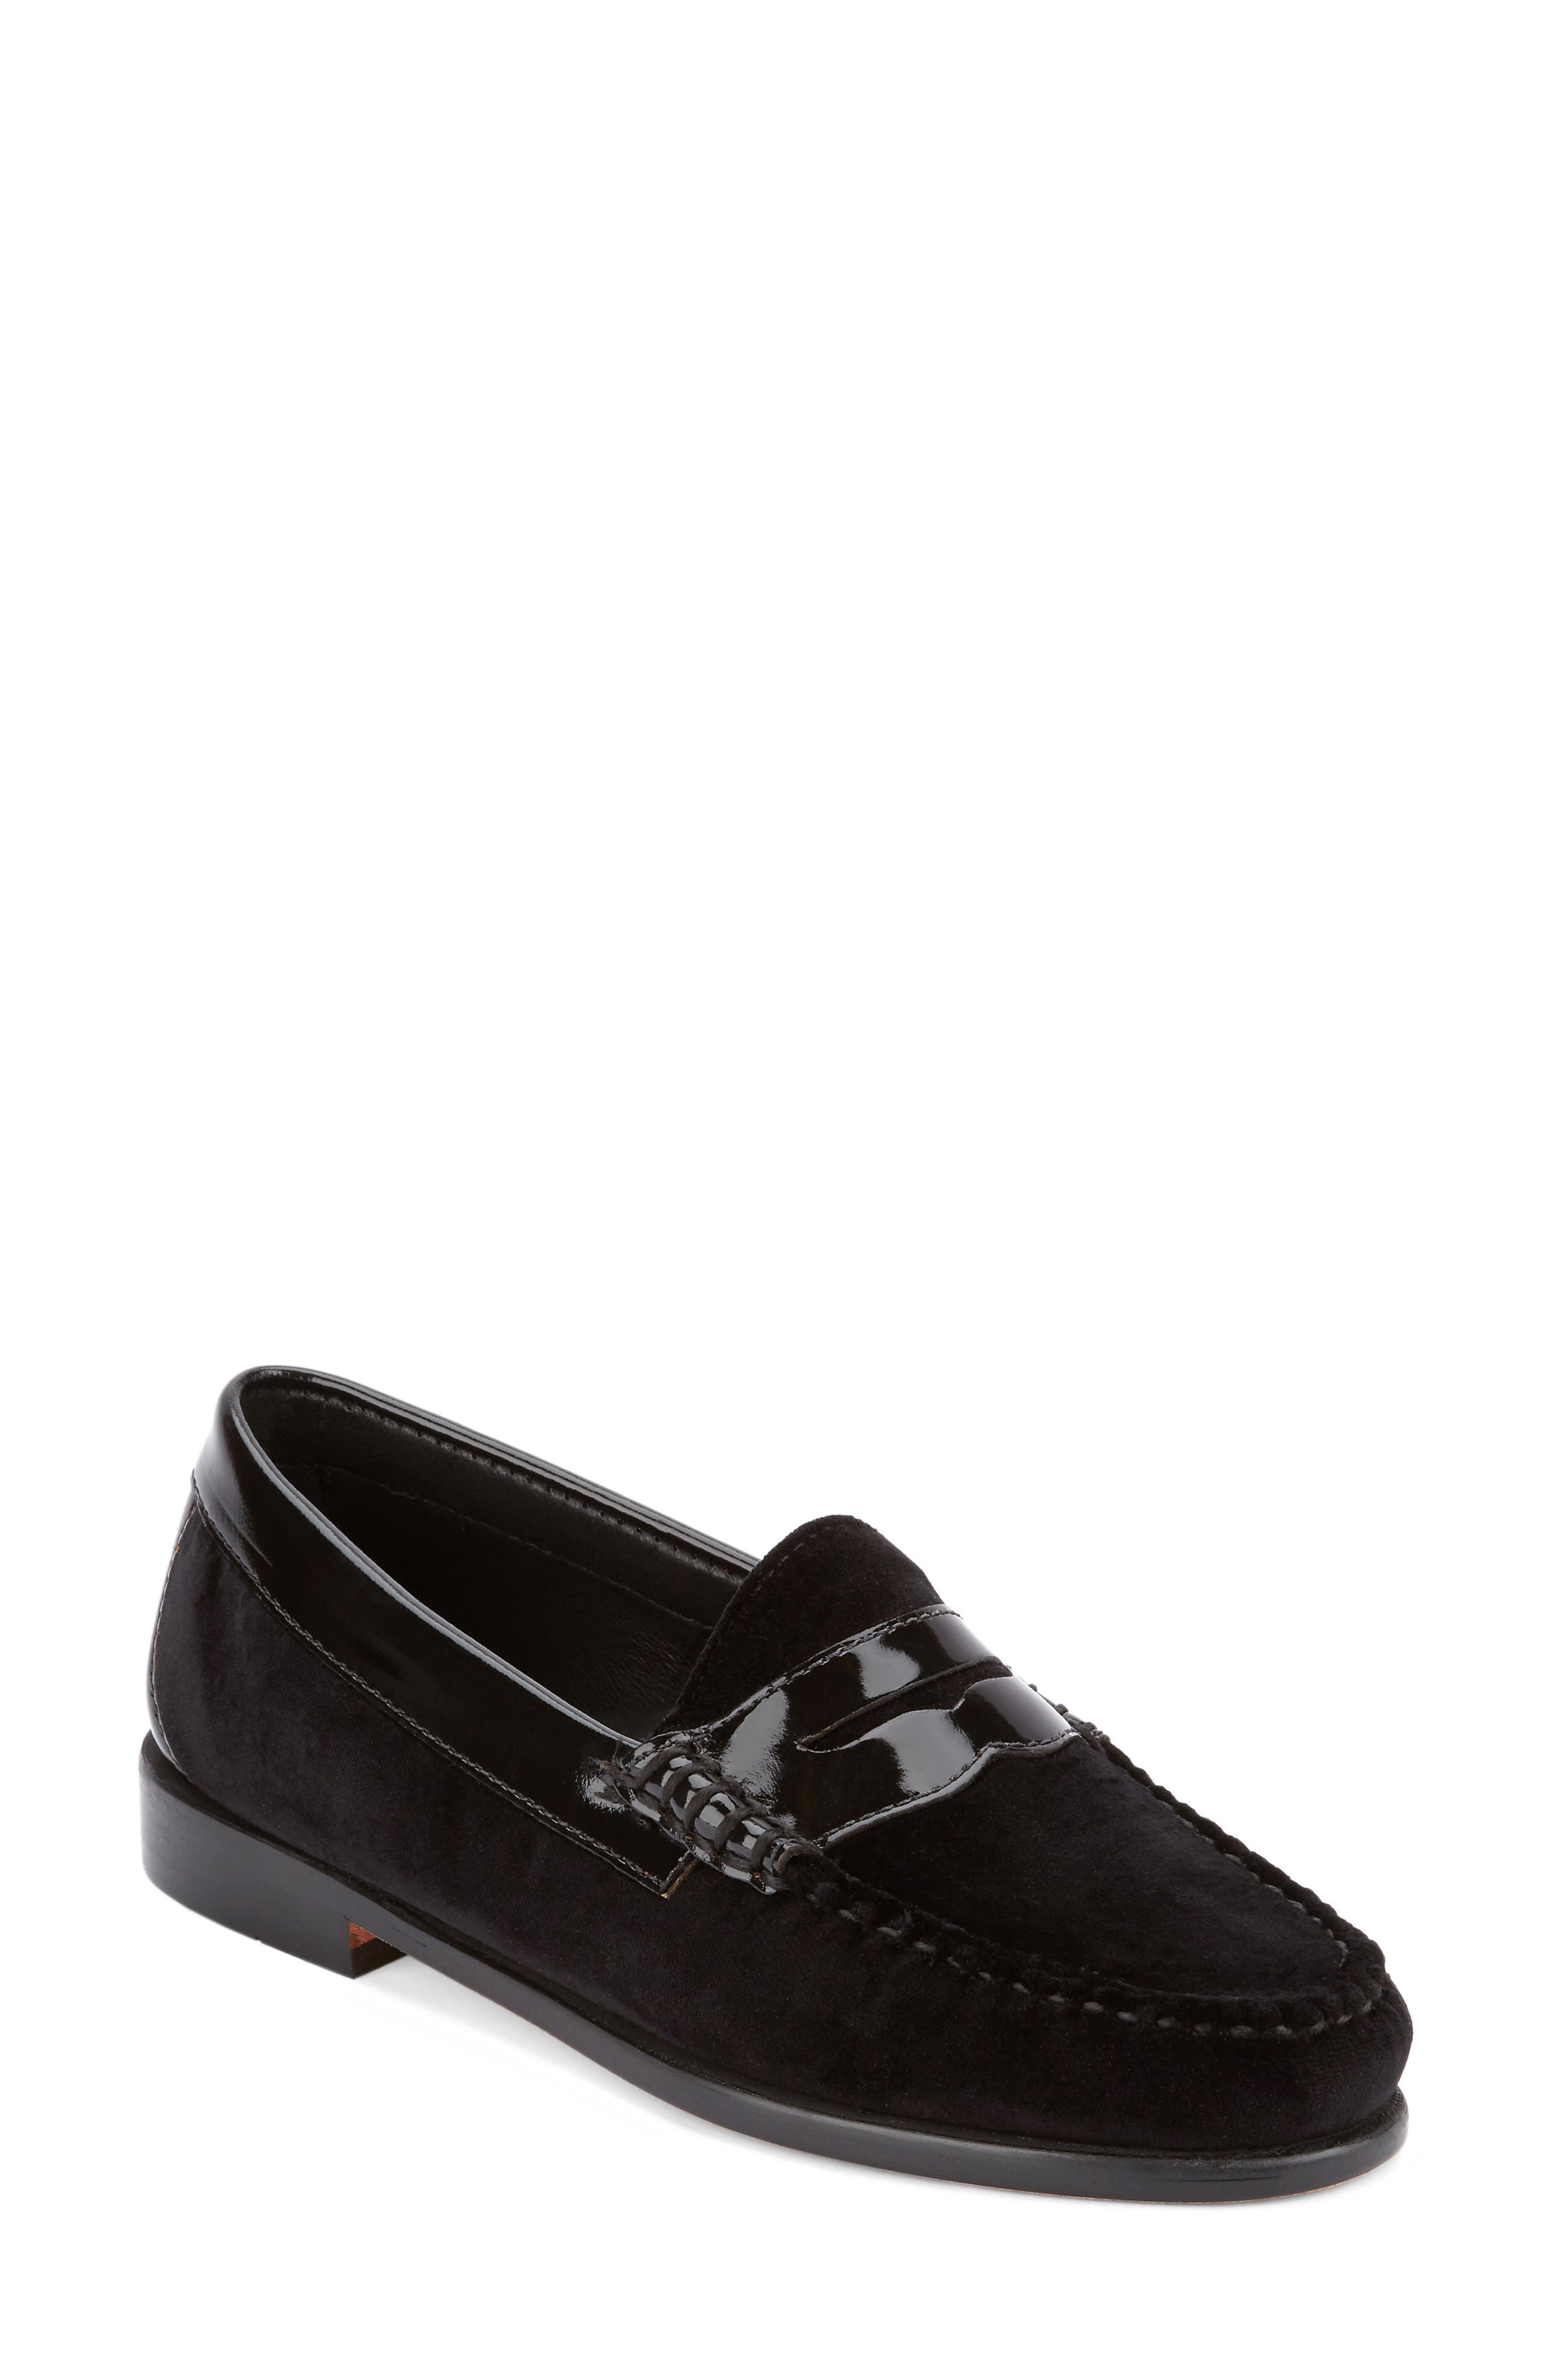 'Whitney' Loafer,                             Main thumbnail 1, color,